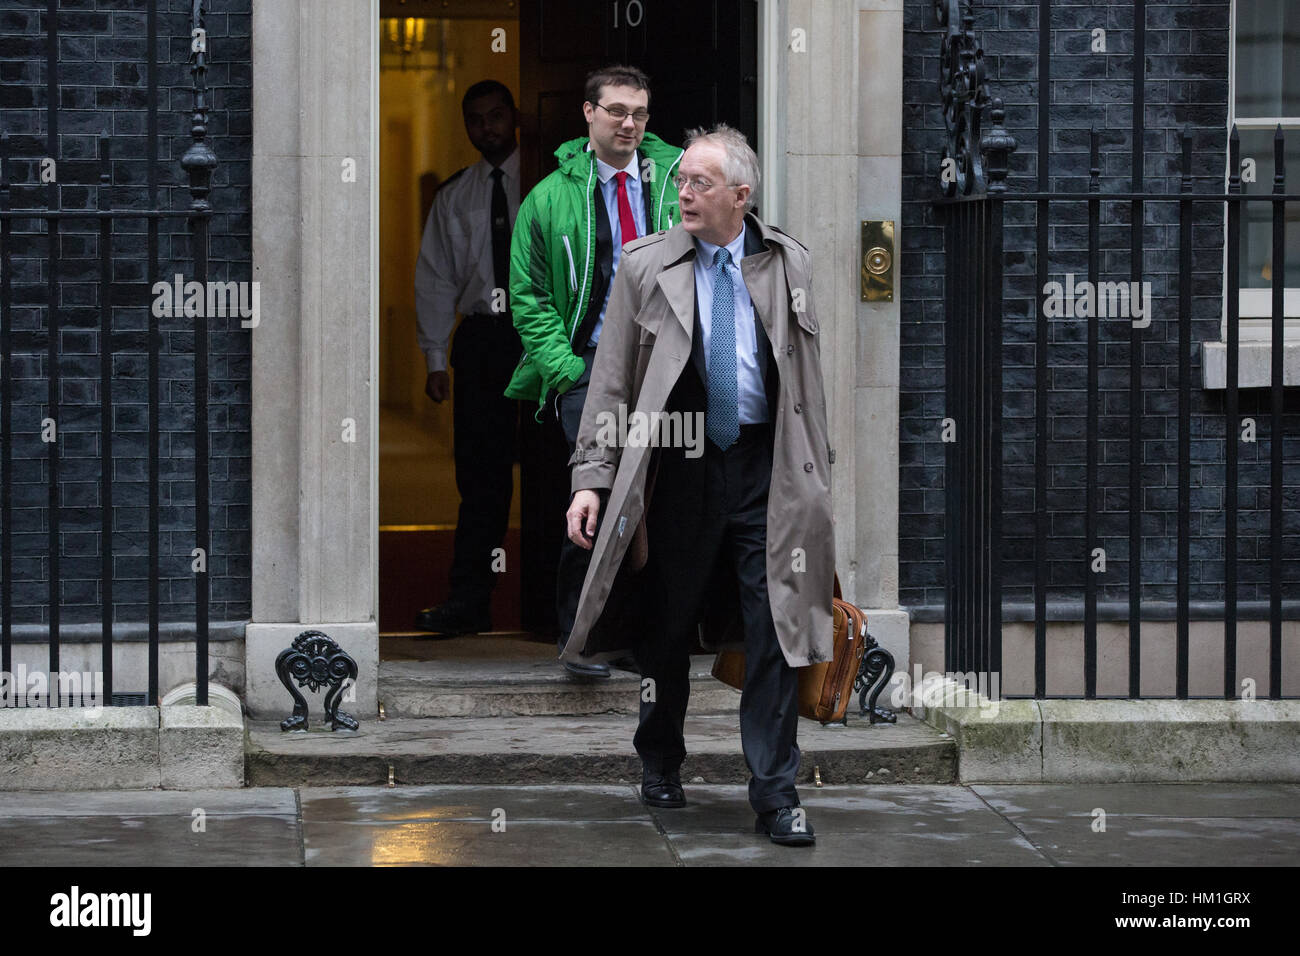 London, UK. 31st January, 2017. Myron Ebell, the controversial climate change sceptic and adviser to President Donald - Stock Image